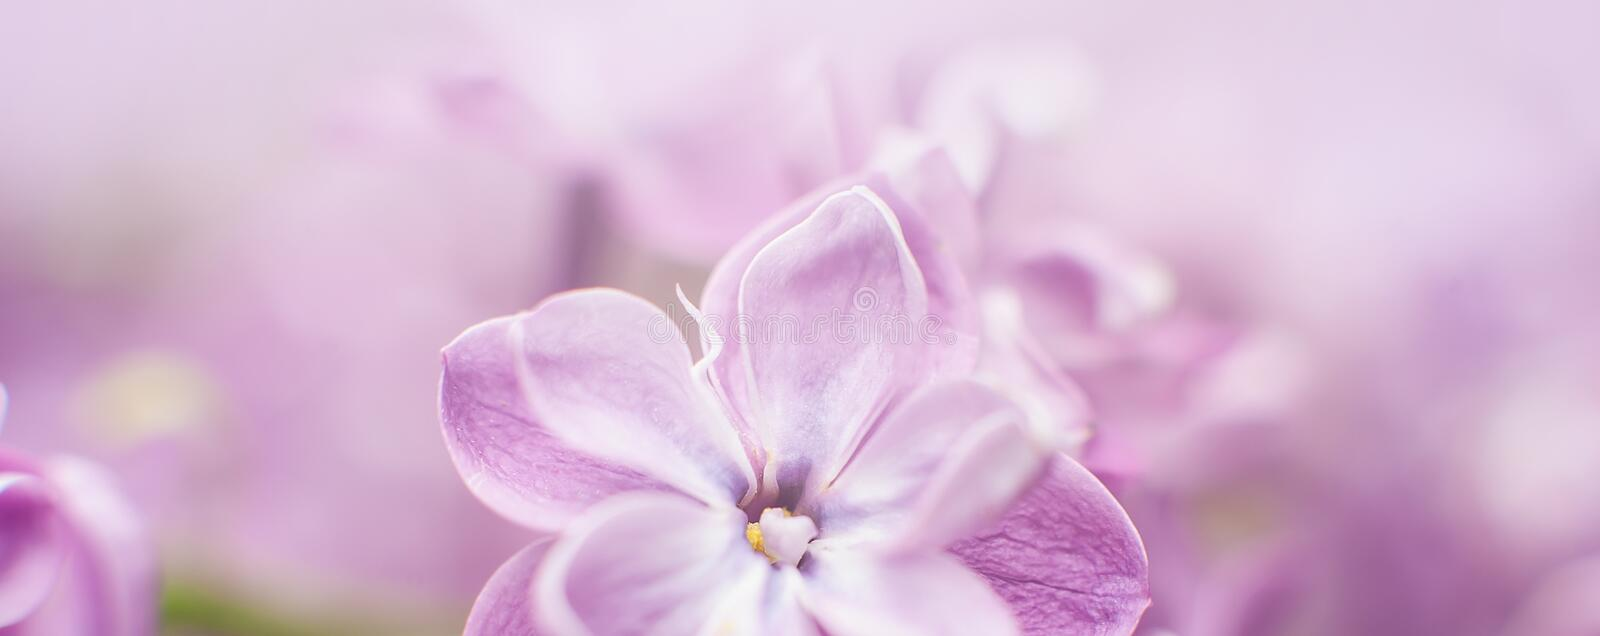 Macro view of flower lilac. A beautiful bunch of lilac closeup. Bush Bloom. flowers in the garden. Soft selective focus. Wide banner, spring, background, balmy royalty free stock photos